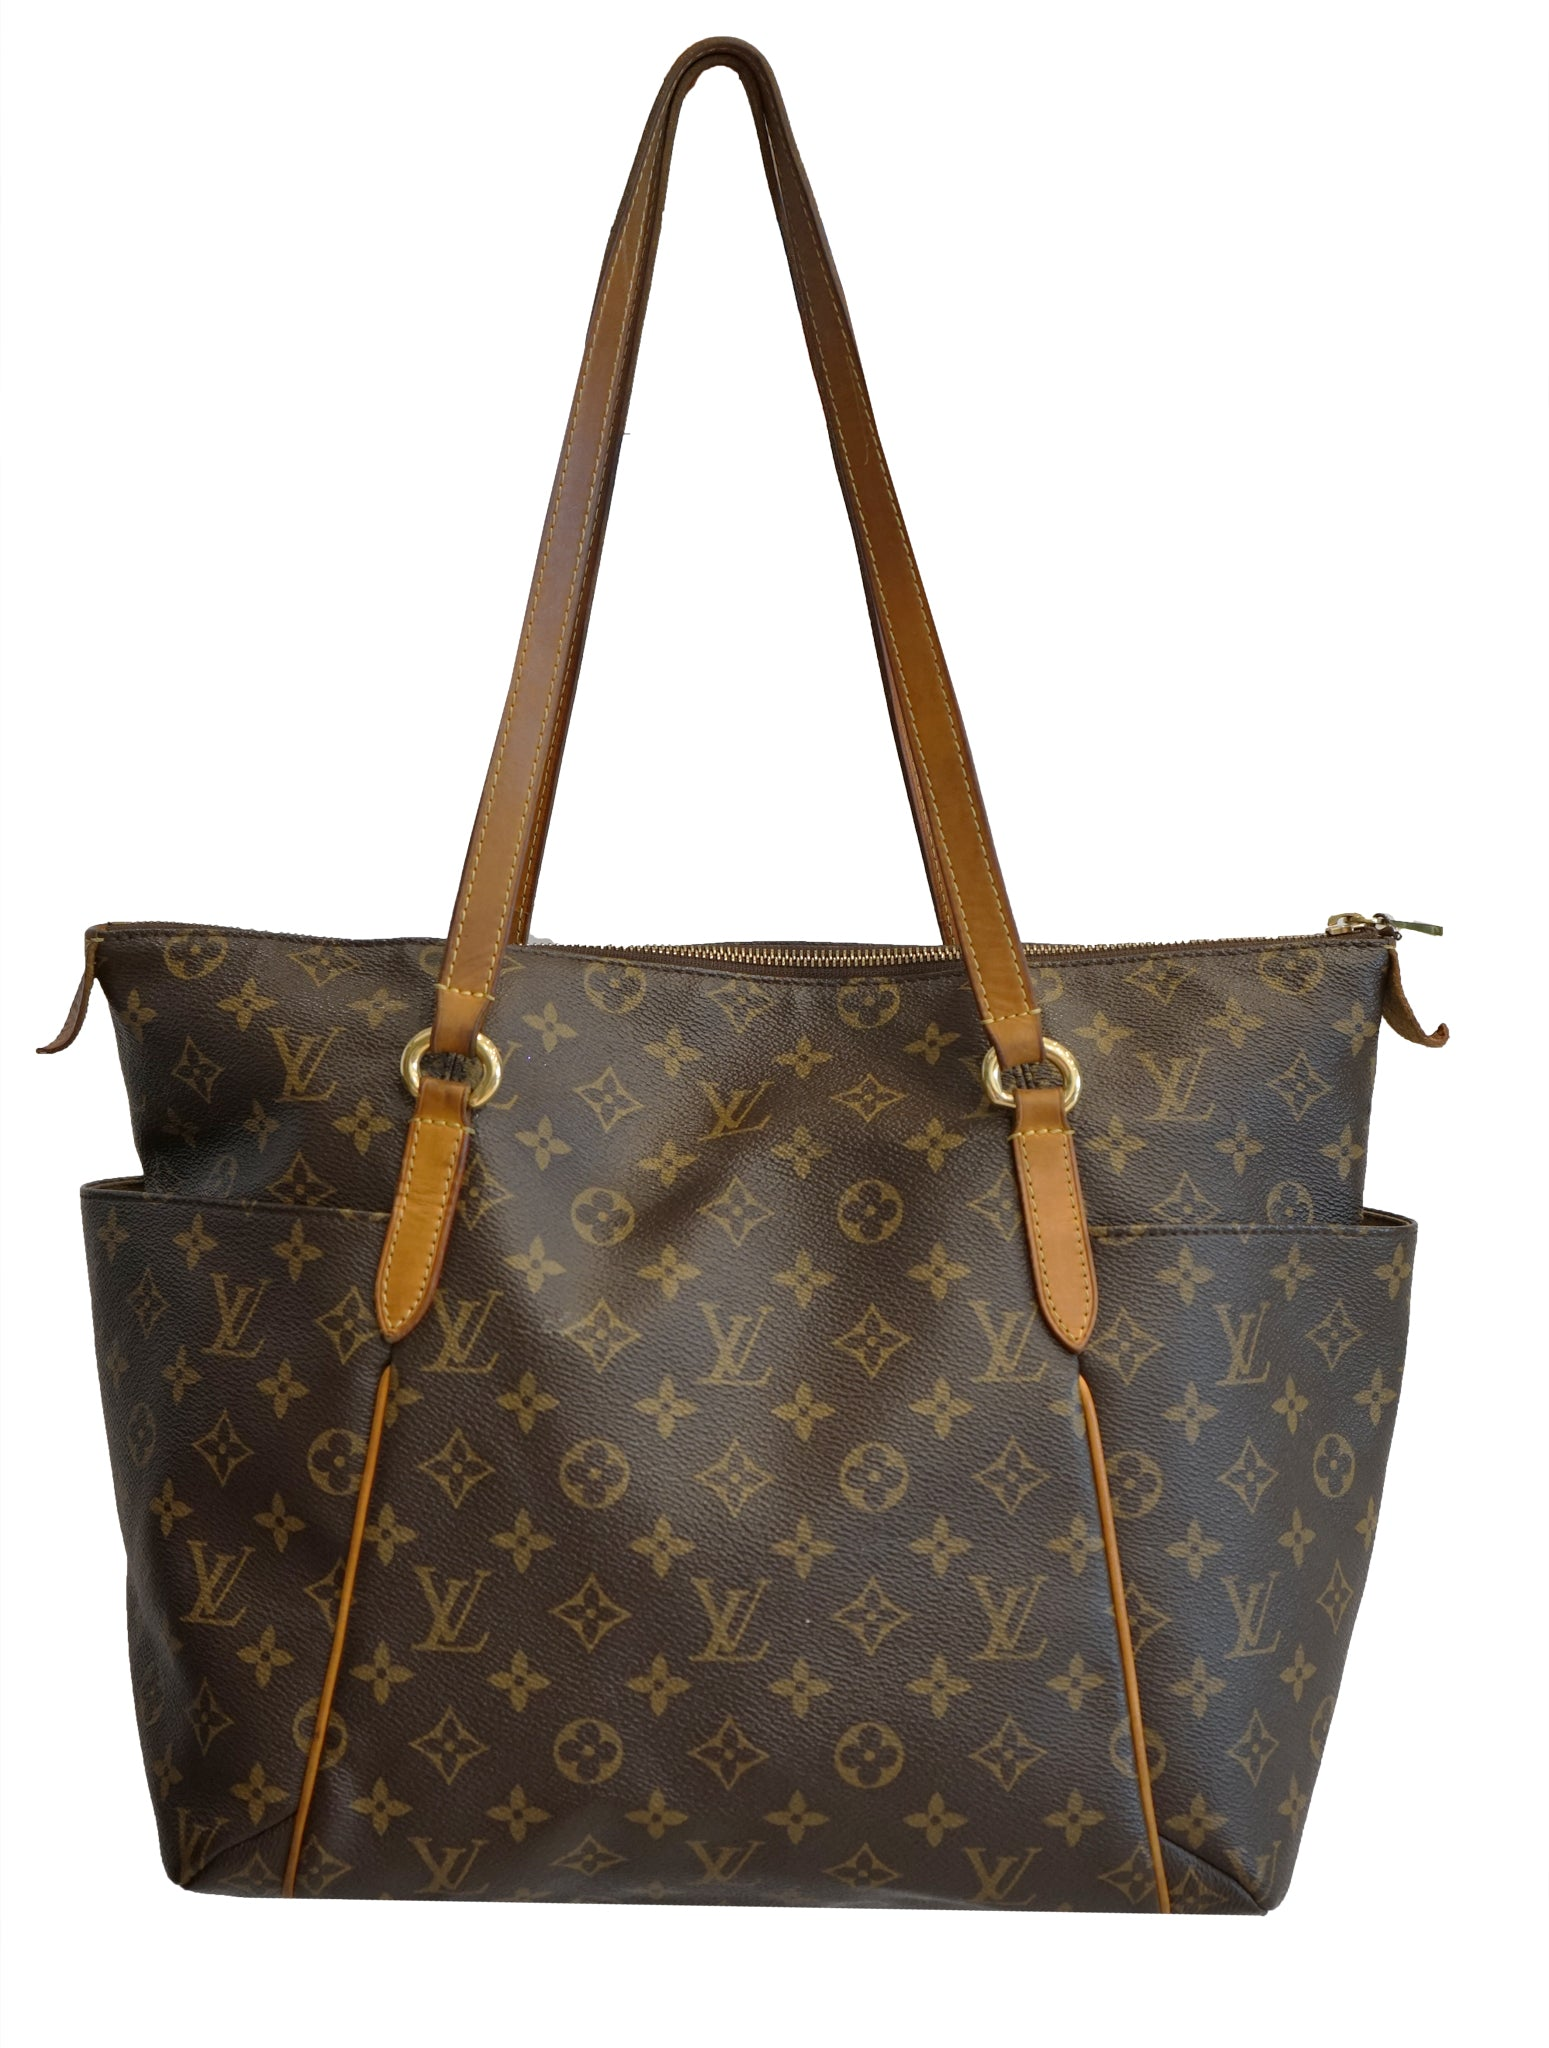 Louis Vuitton Bag, Women's Handbag, Designers Bag, Luxury Bag, Totally MM Bag